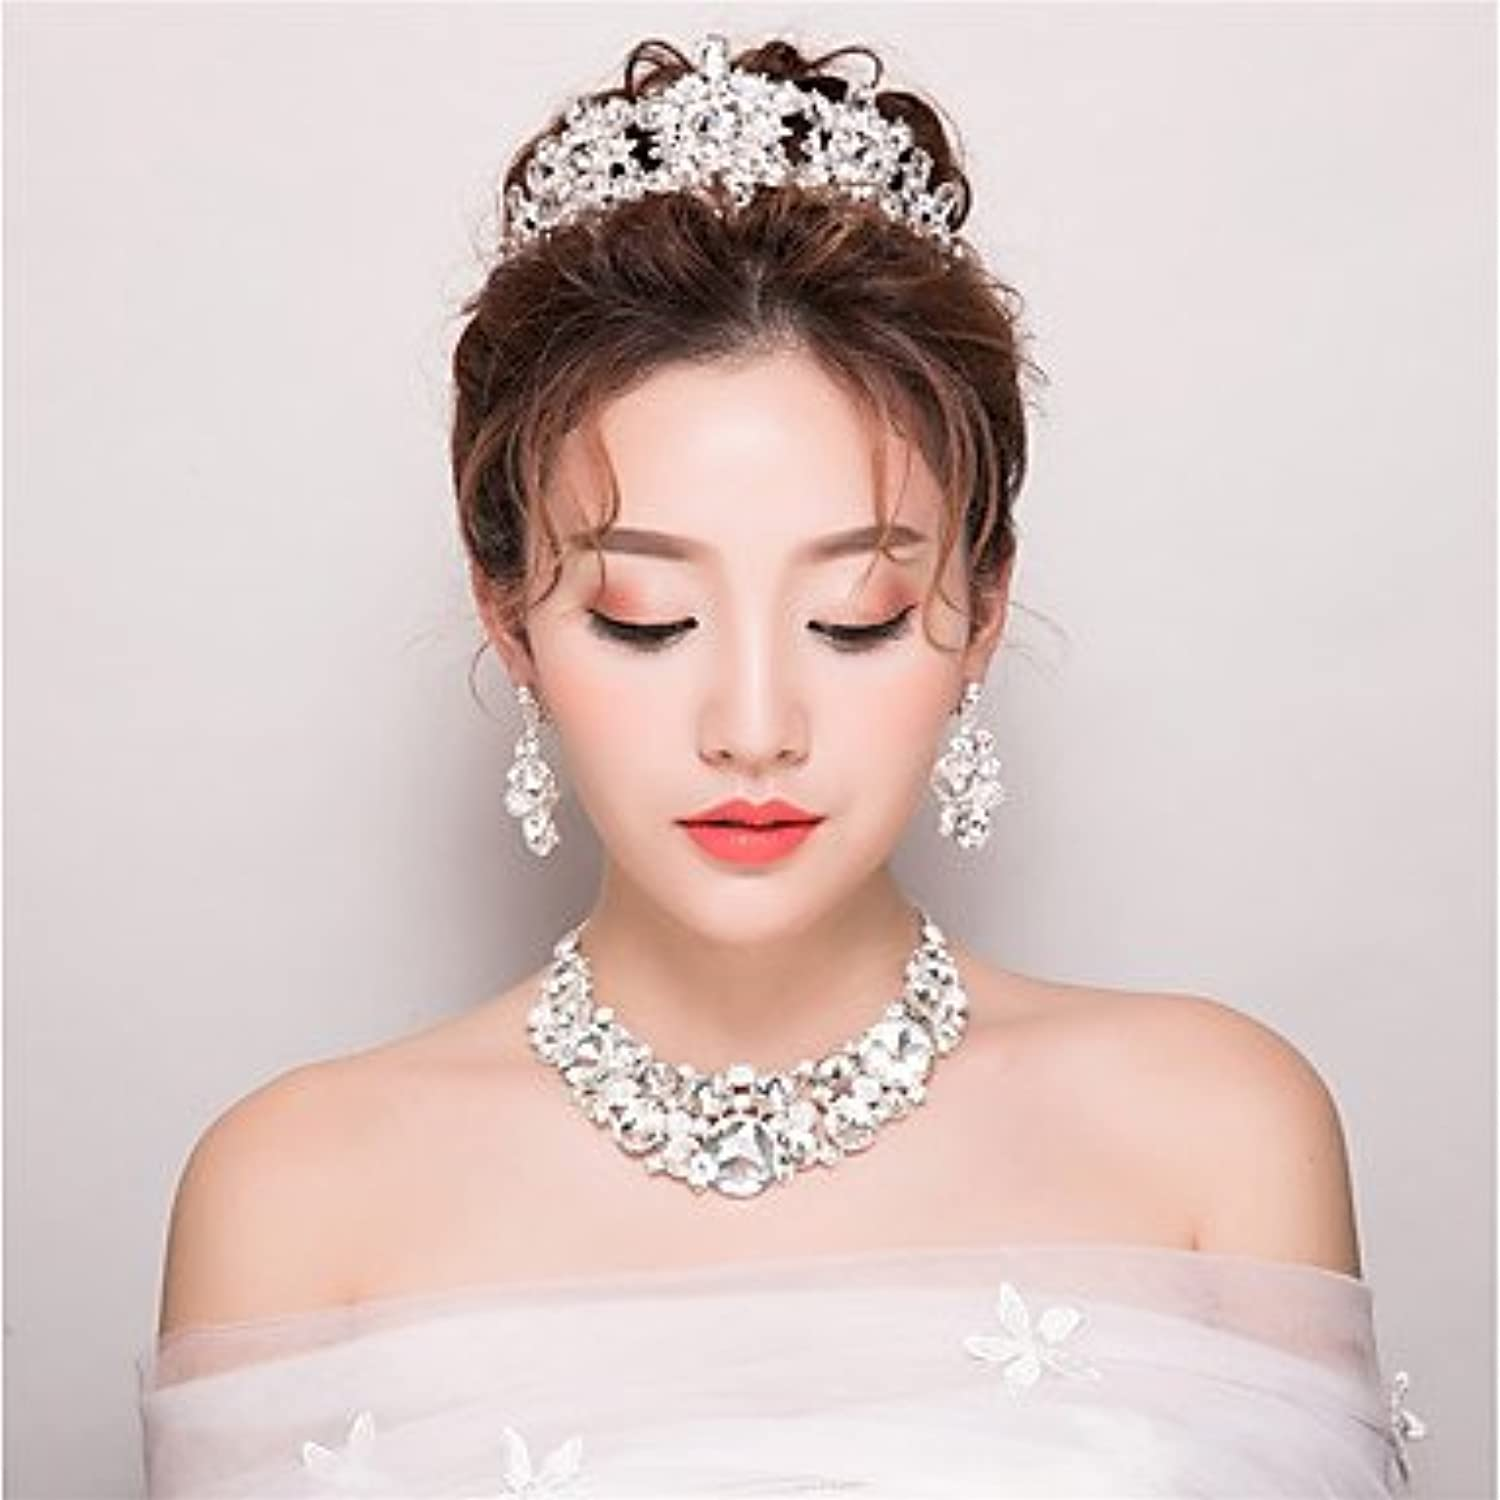 Halloween headdress Rhinestone Jewelry SetsWedding Special Occasion Birthday Party  Evening Necklace Earrings 3Piece Set Christmas headdress